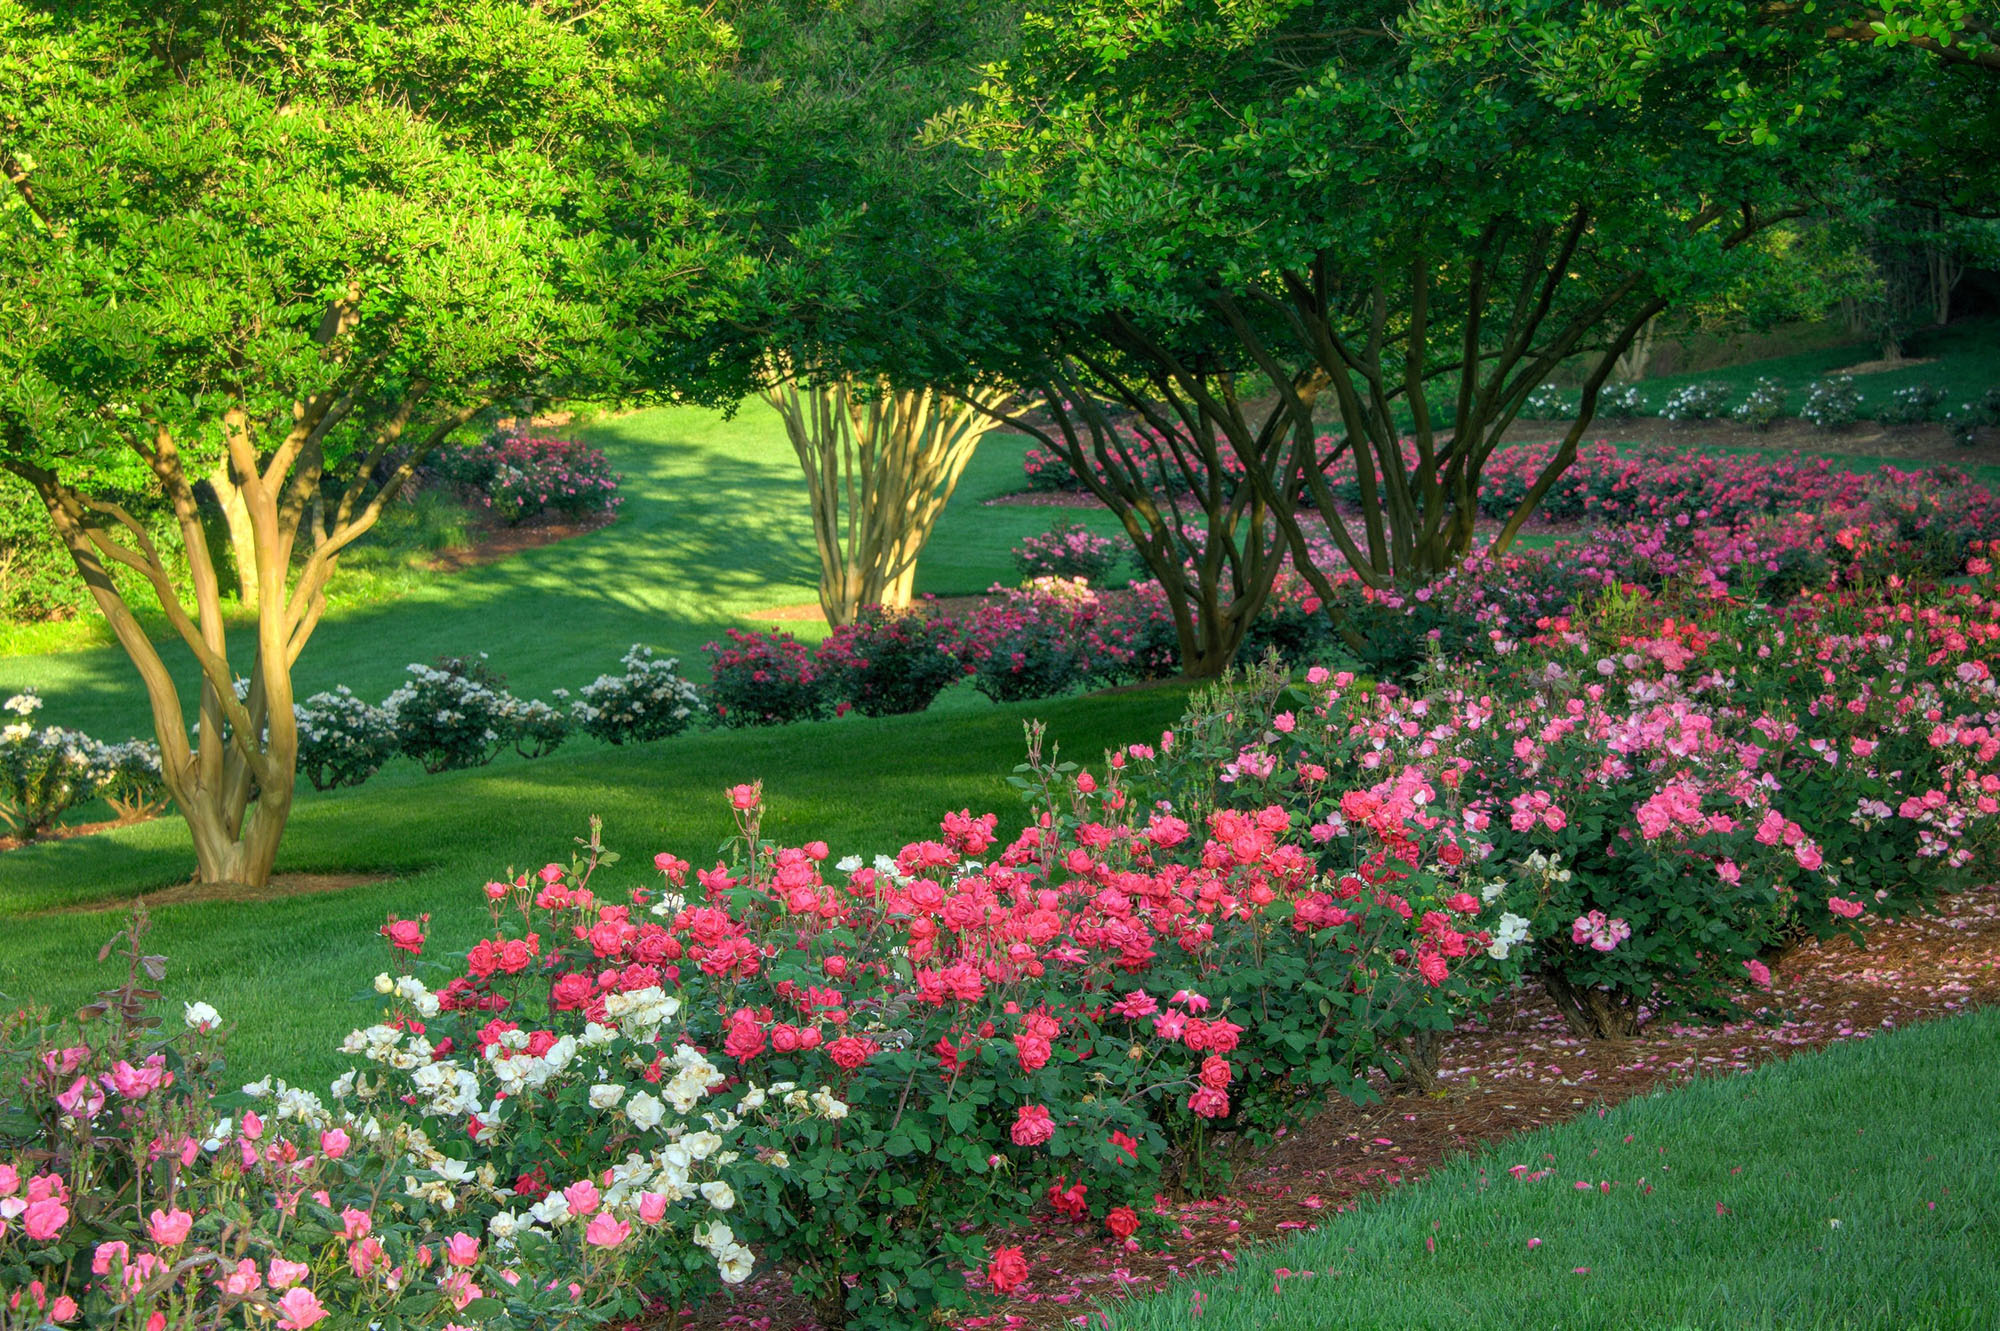 Roses In Garden: Spring Garden Tips And Inspiration From North Georgia